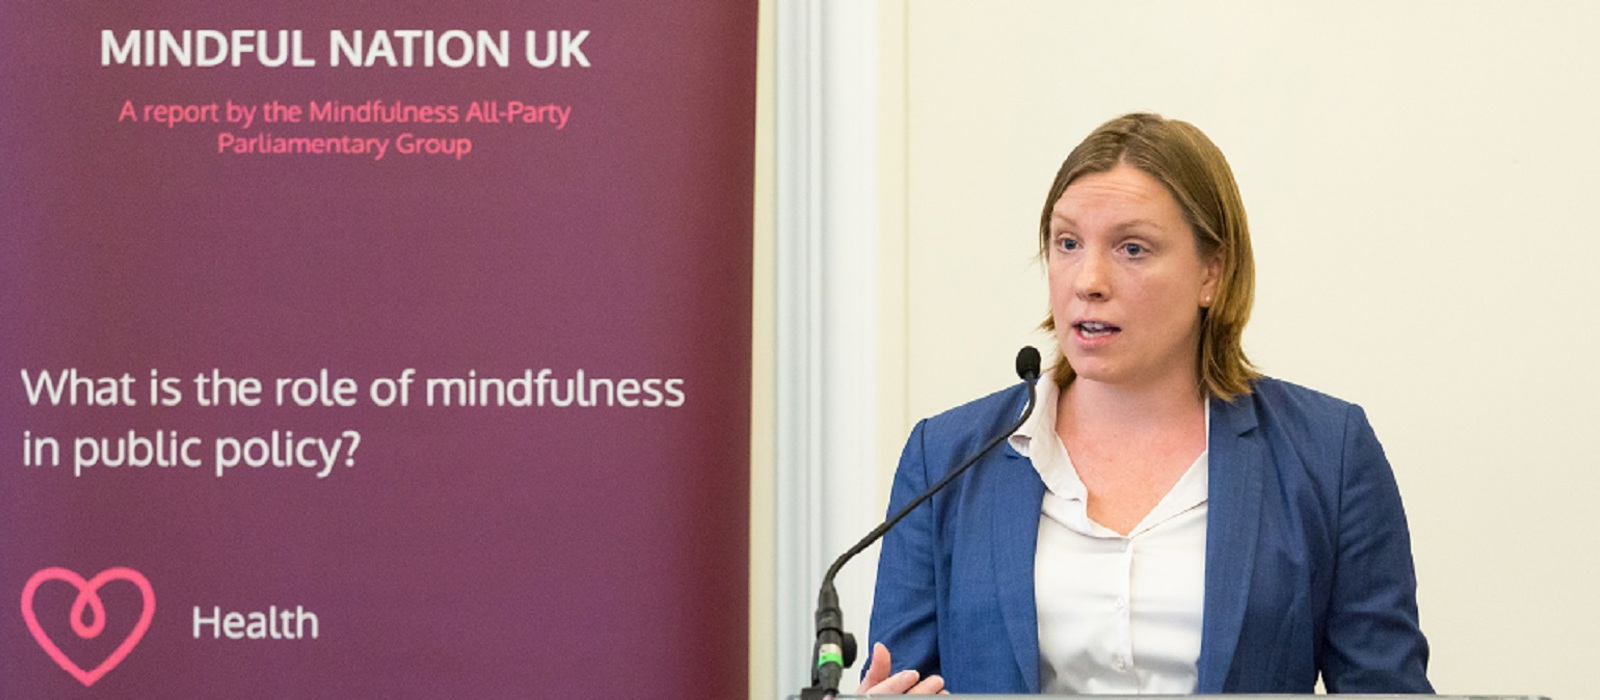 Mindfulness an important aid in policy-making